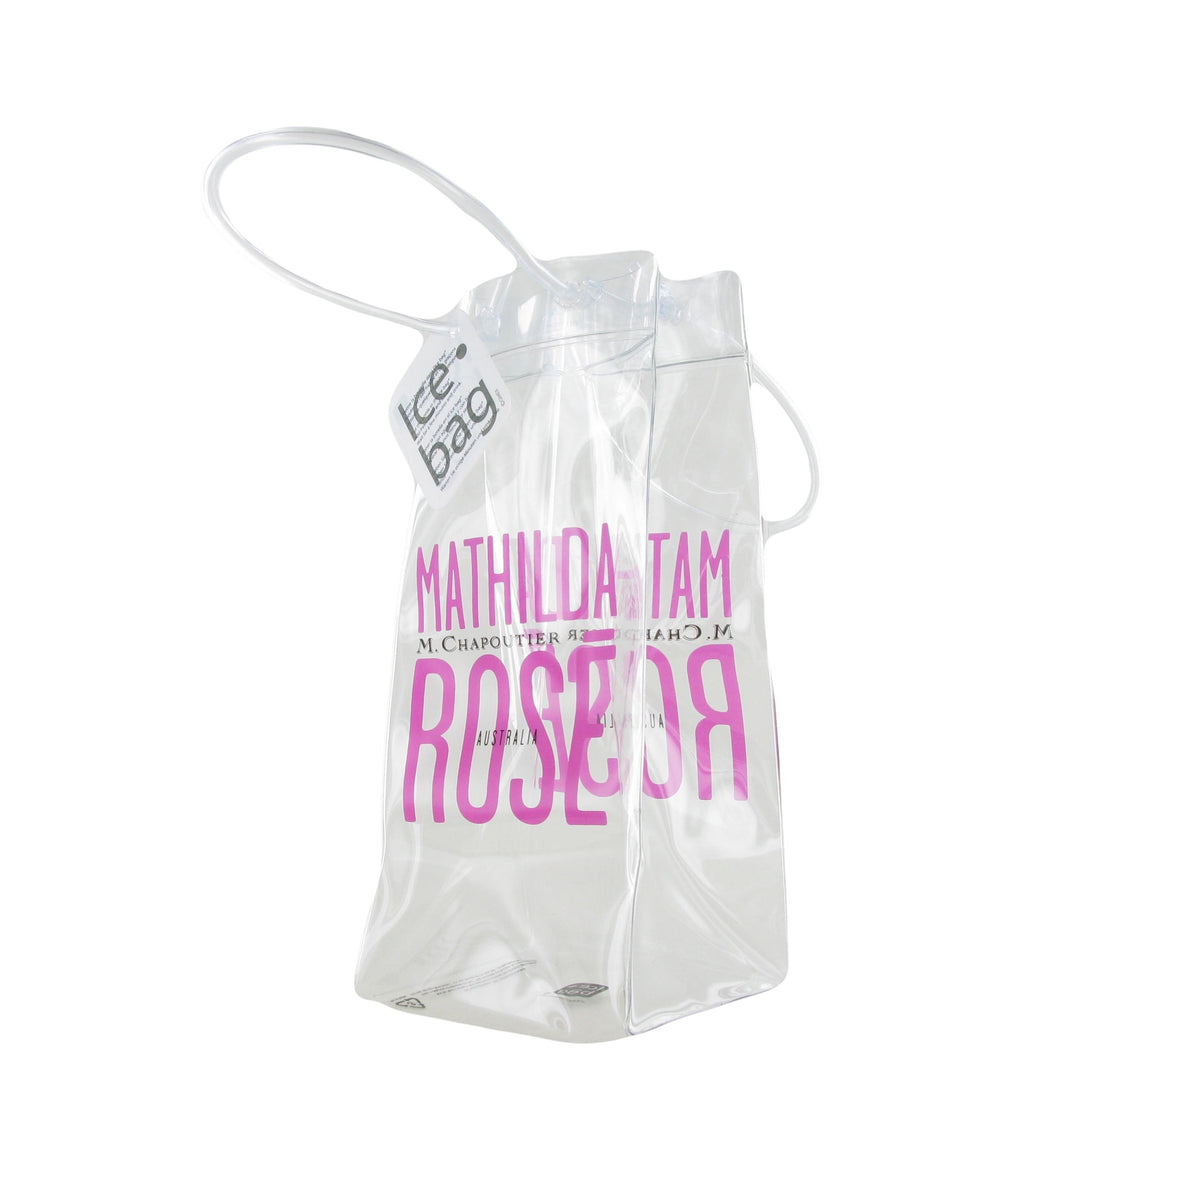 "M. CHAPOUTIER - Ice Bag ""Mathilda Rose"""